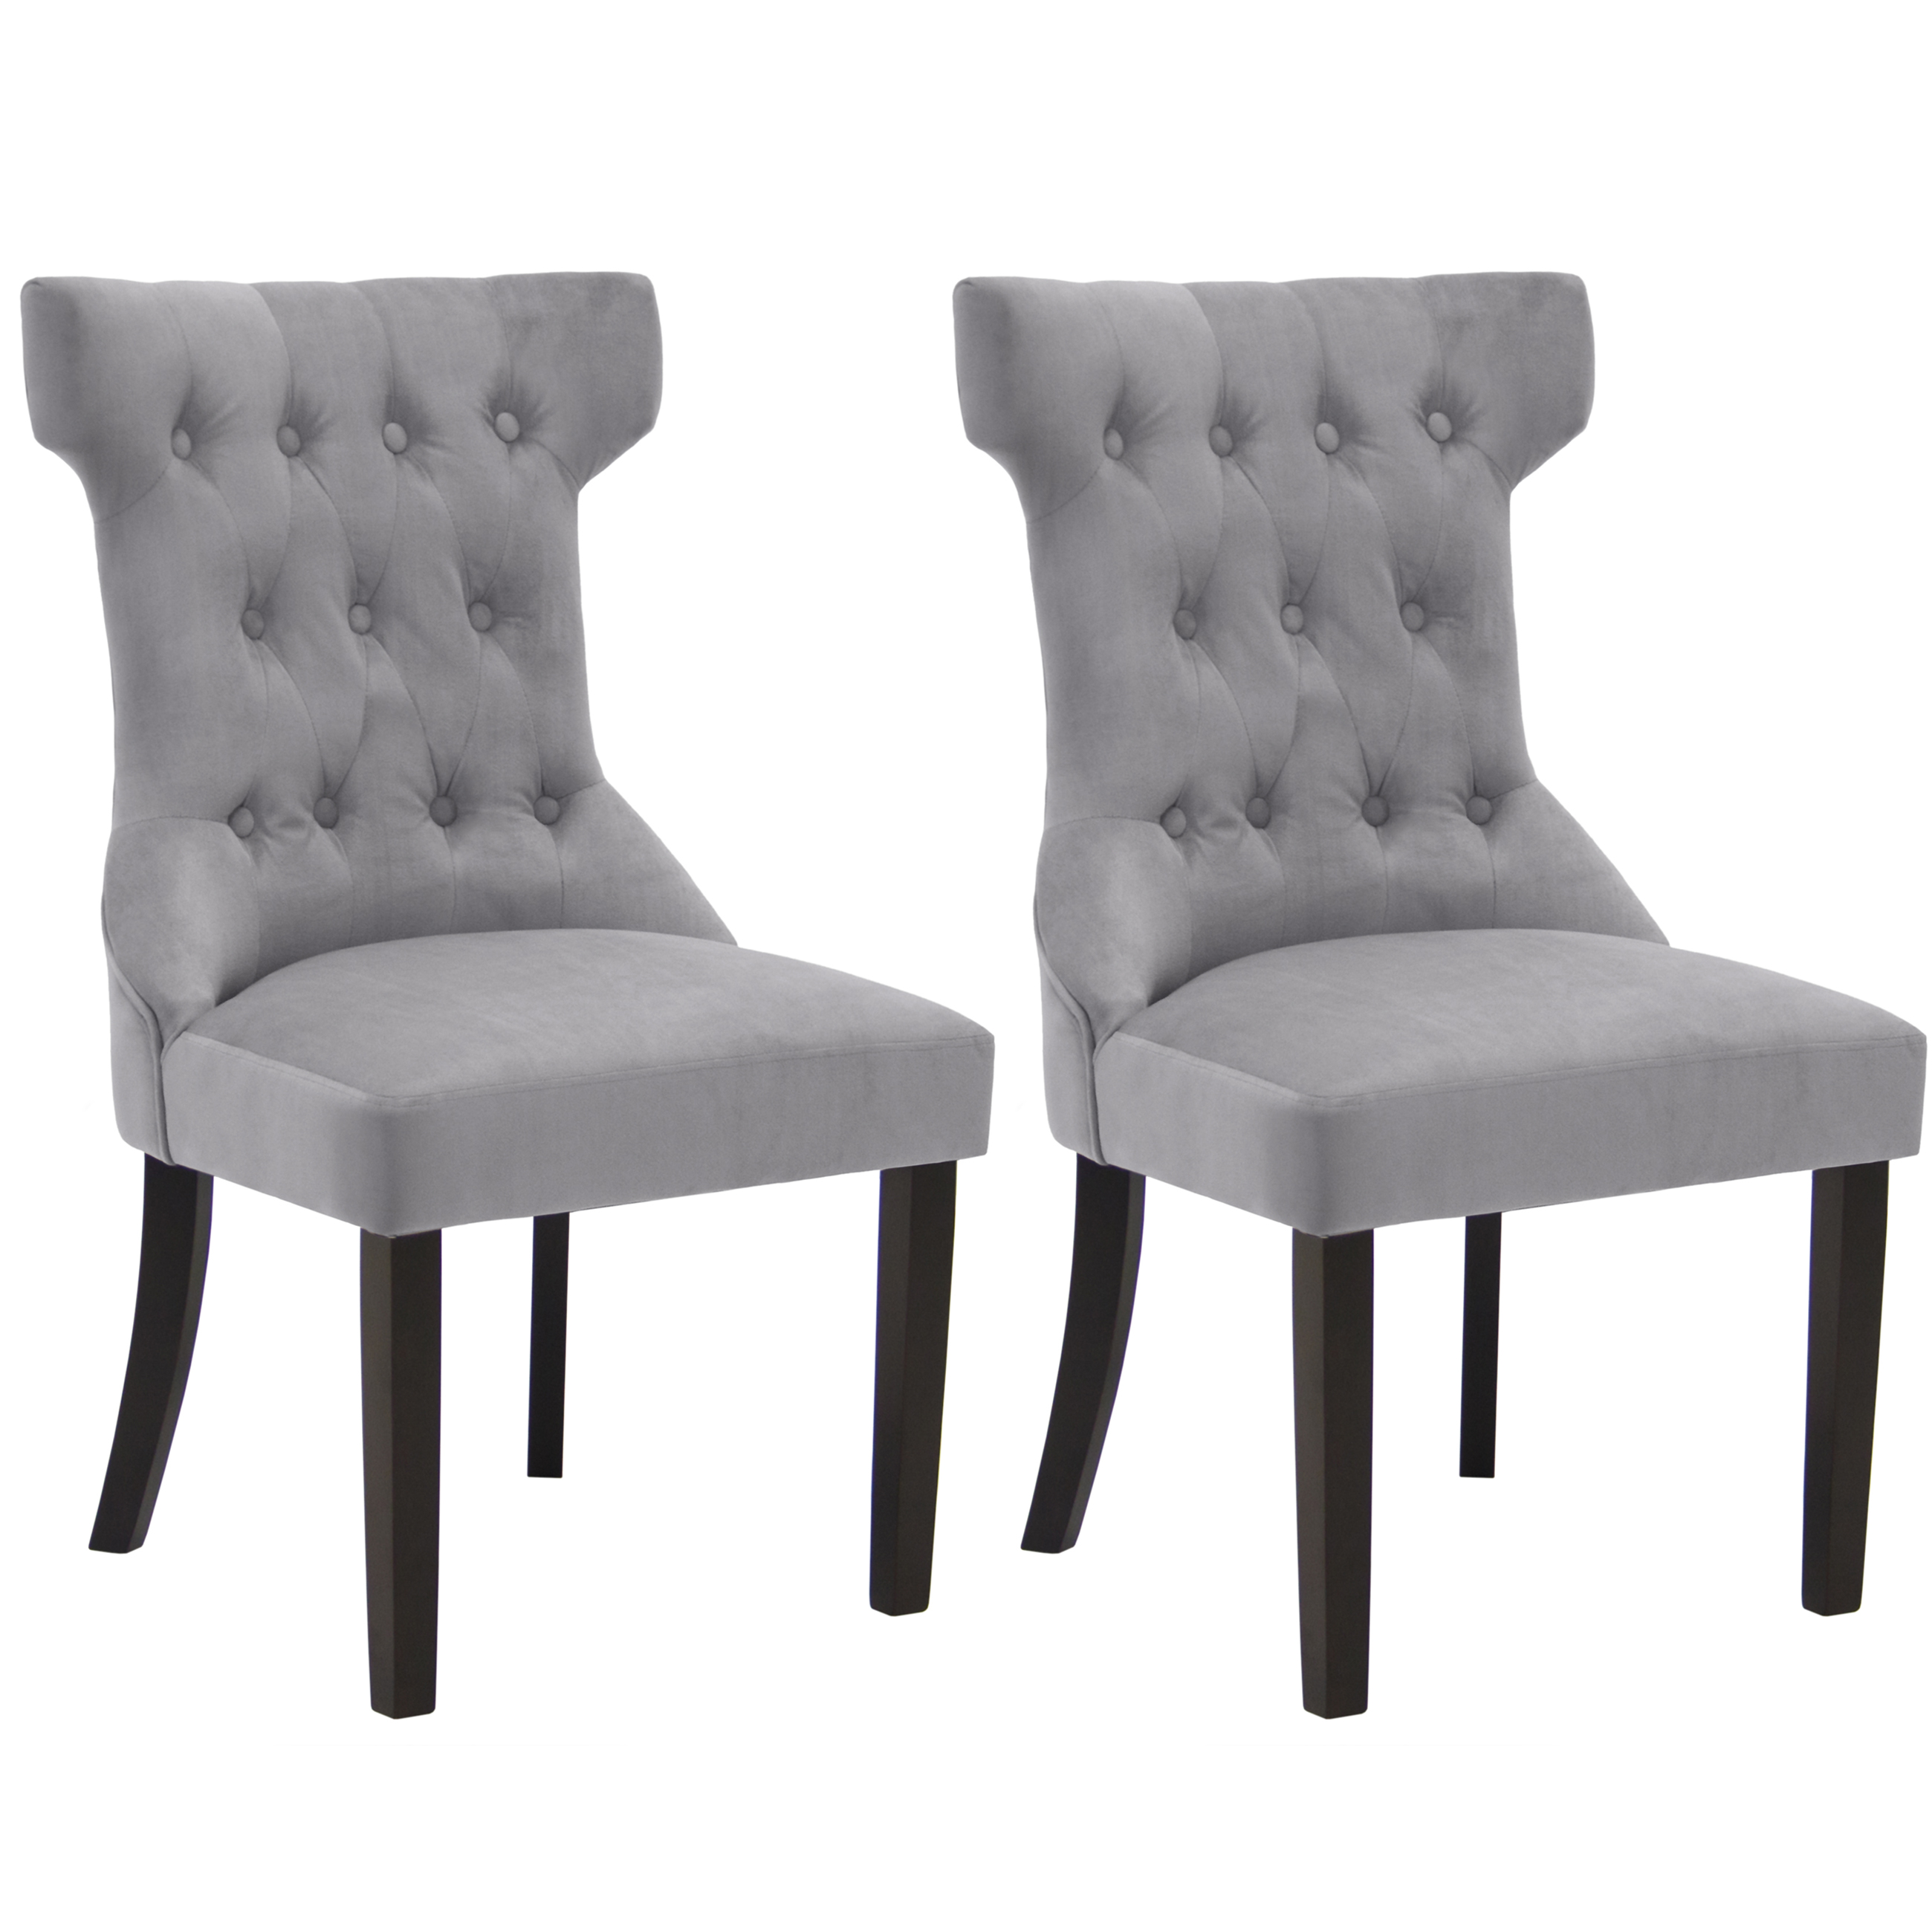 BCP Set of 2 Elegant Design Tufted Dining Chairs Contemporary Furniture Grey by